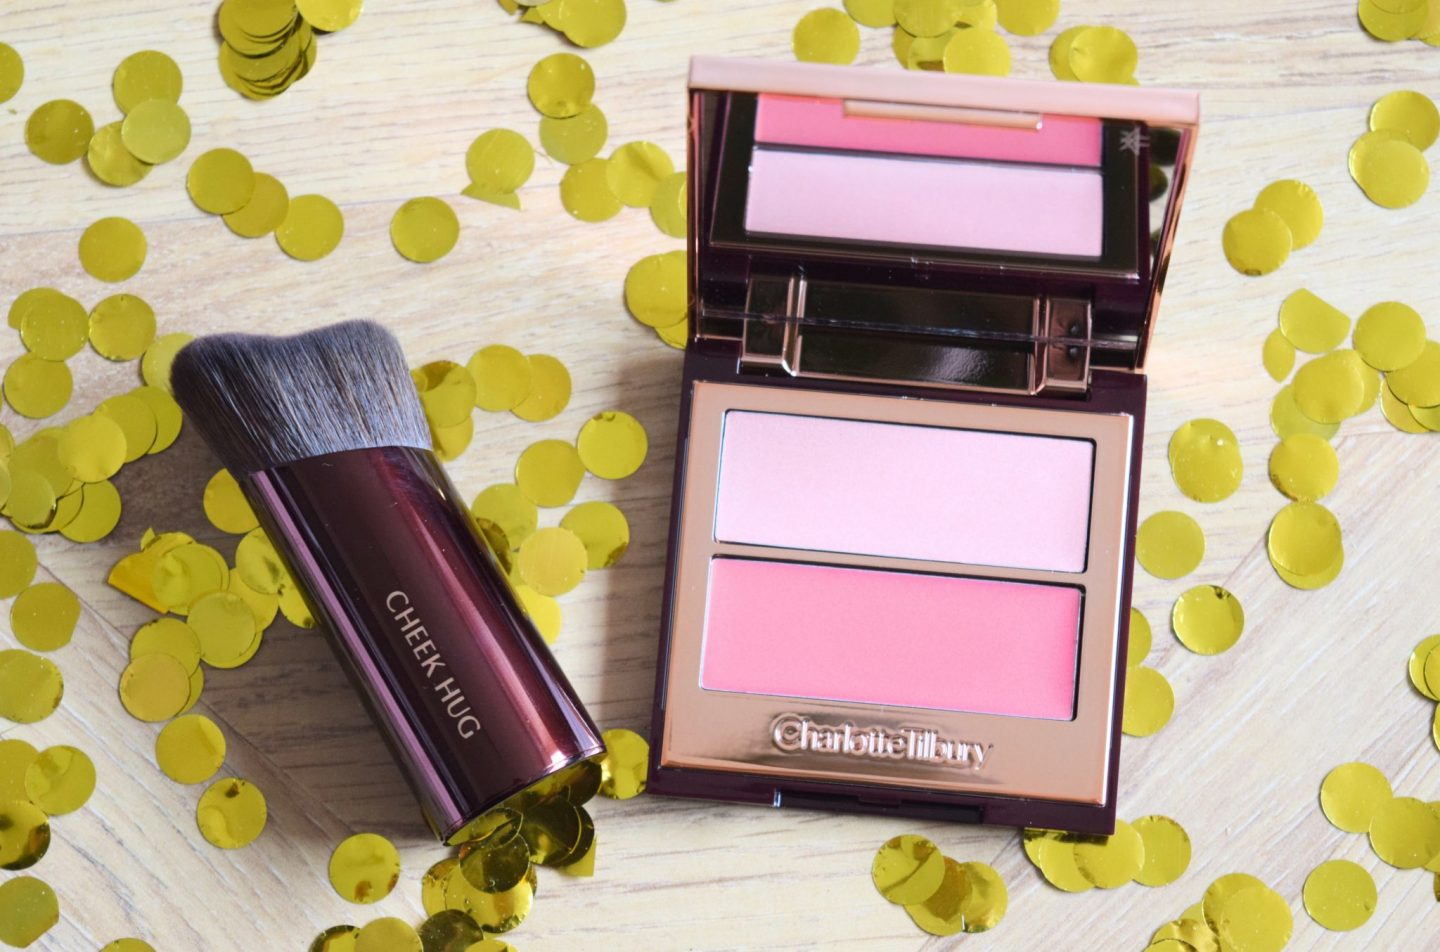 Charlotte Tilbury Pretty Youth GLow Filter Seduce Blush